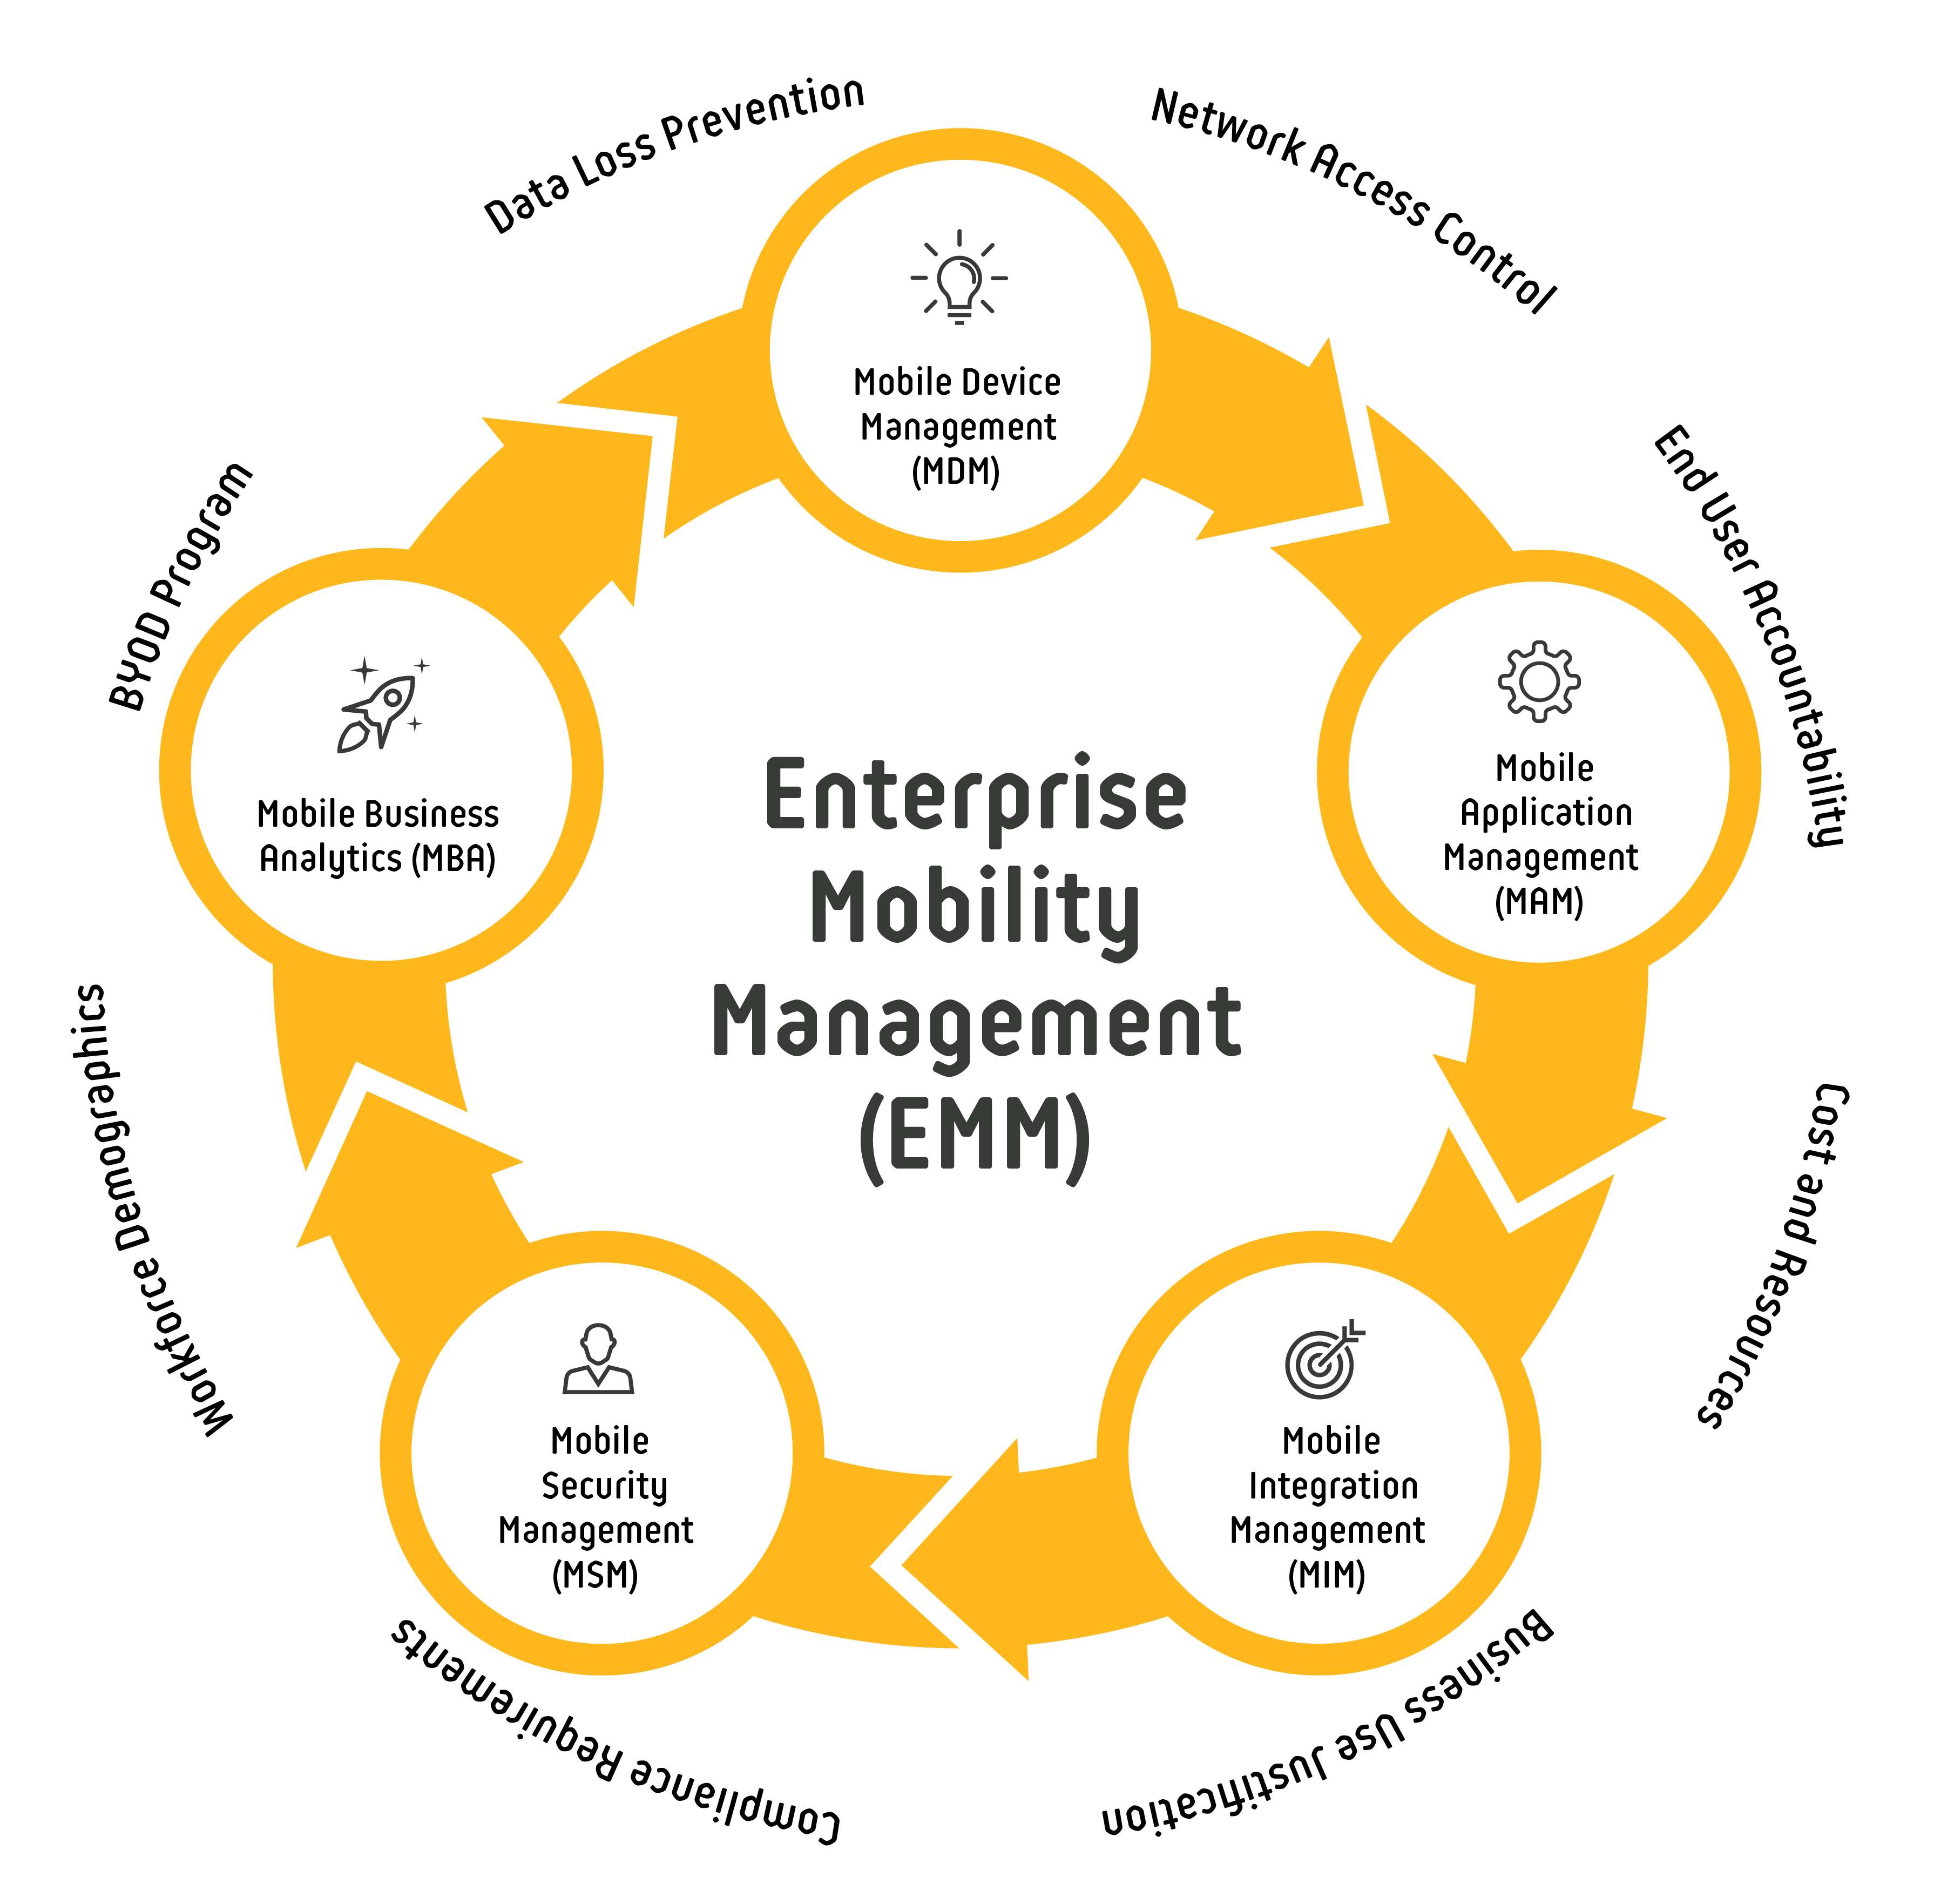 Diagram - The Enterprise Mobility Management (EMM) Sphere